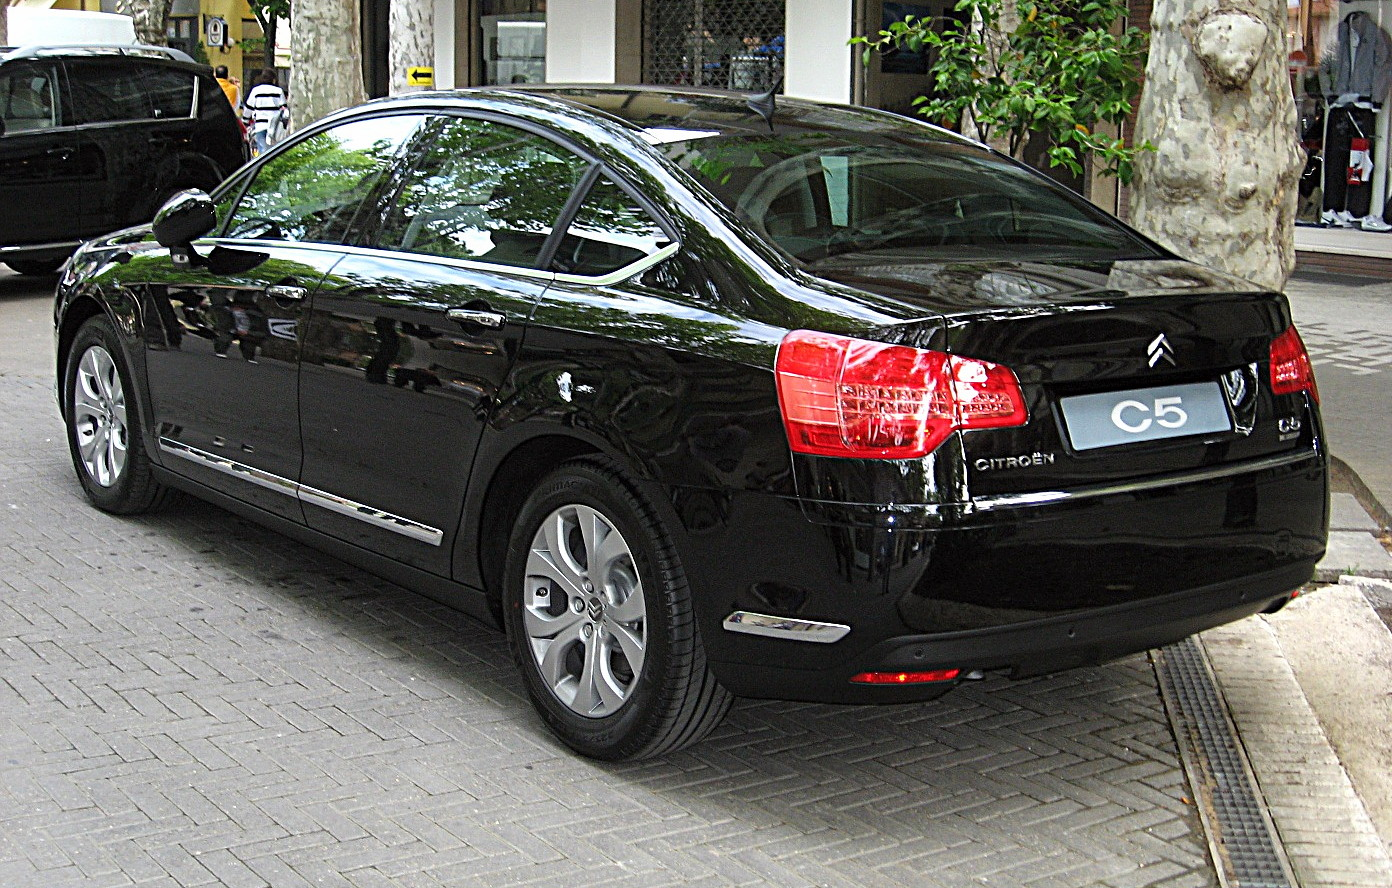 file citroen c5 sedan mk2 rear view jpg wikimedia commons. Black Bedroom Furniture Sets. Home Design Ideas